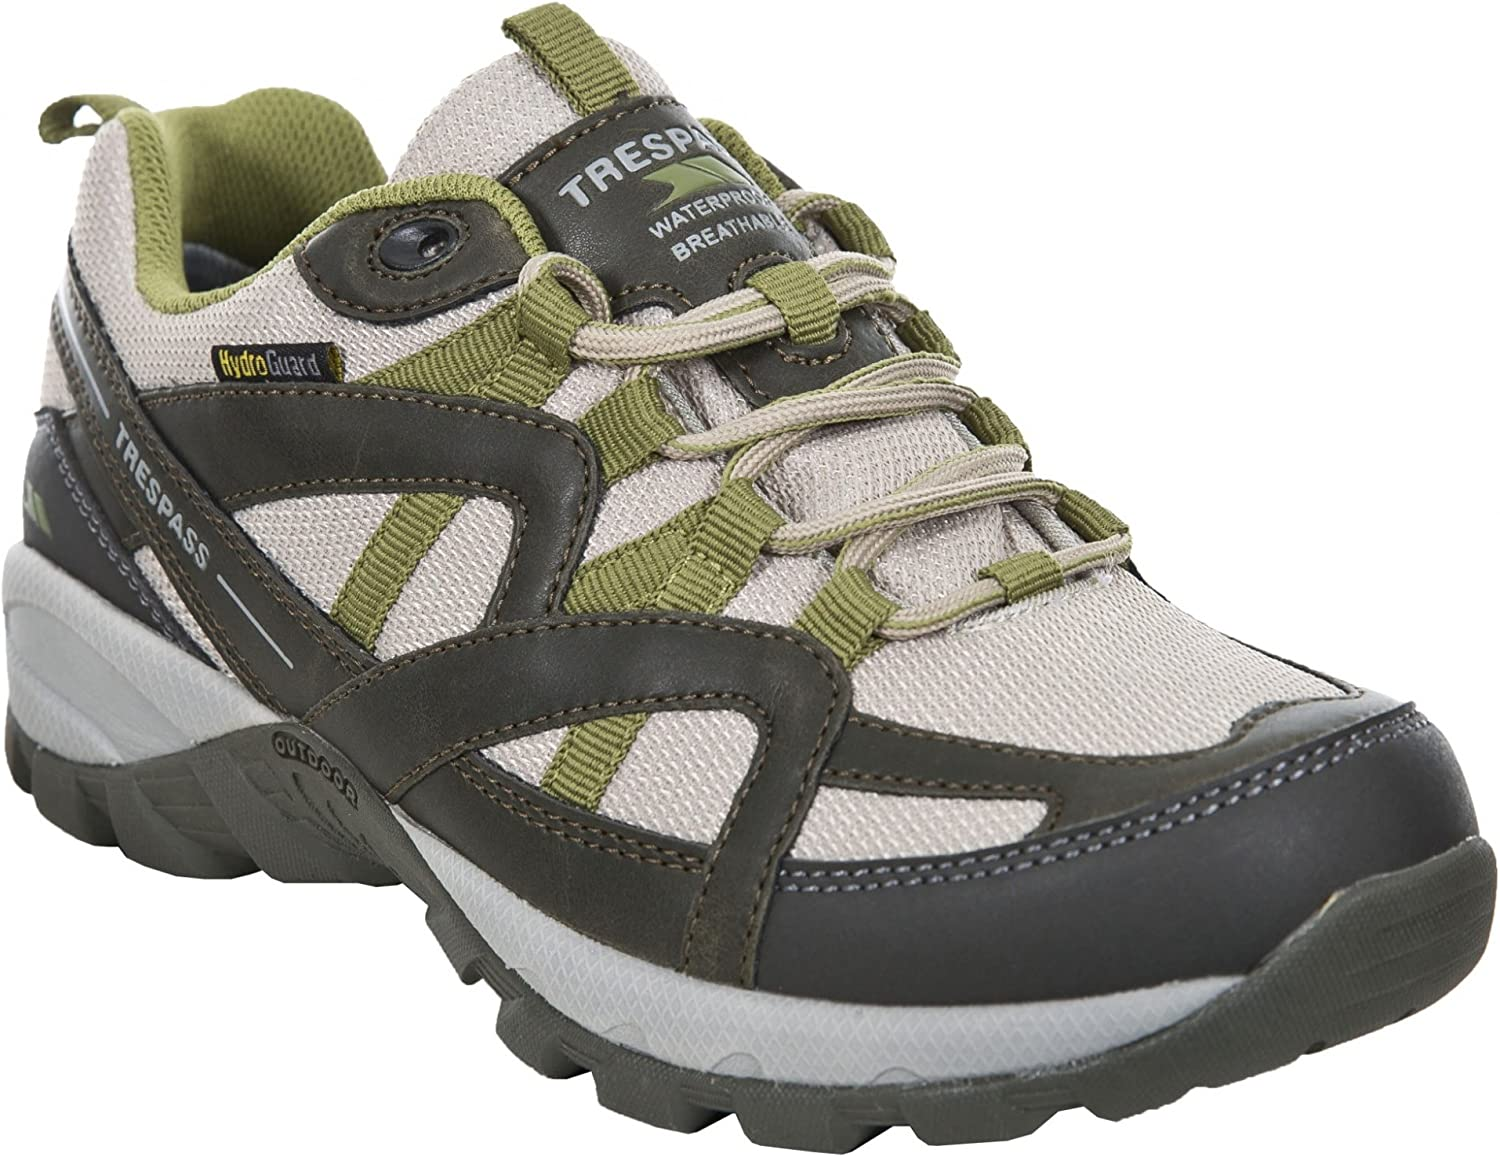 Trespass Womens Ladies Talus Walking Hiking Trainers